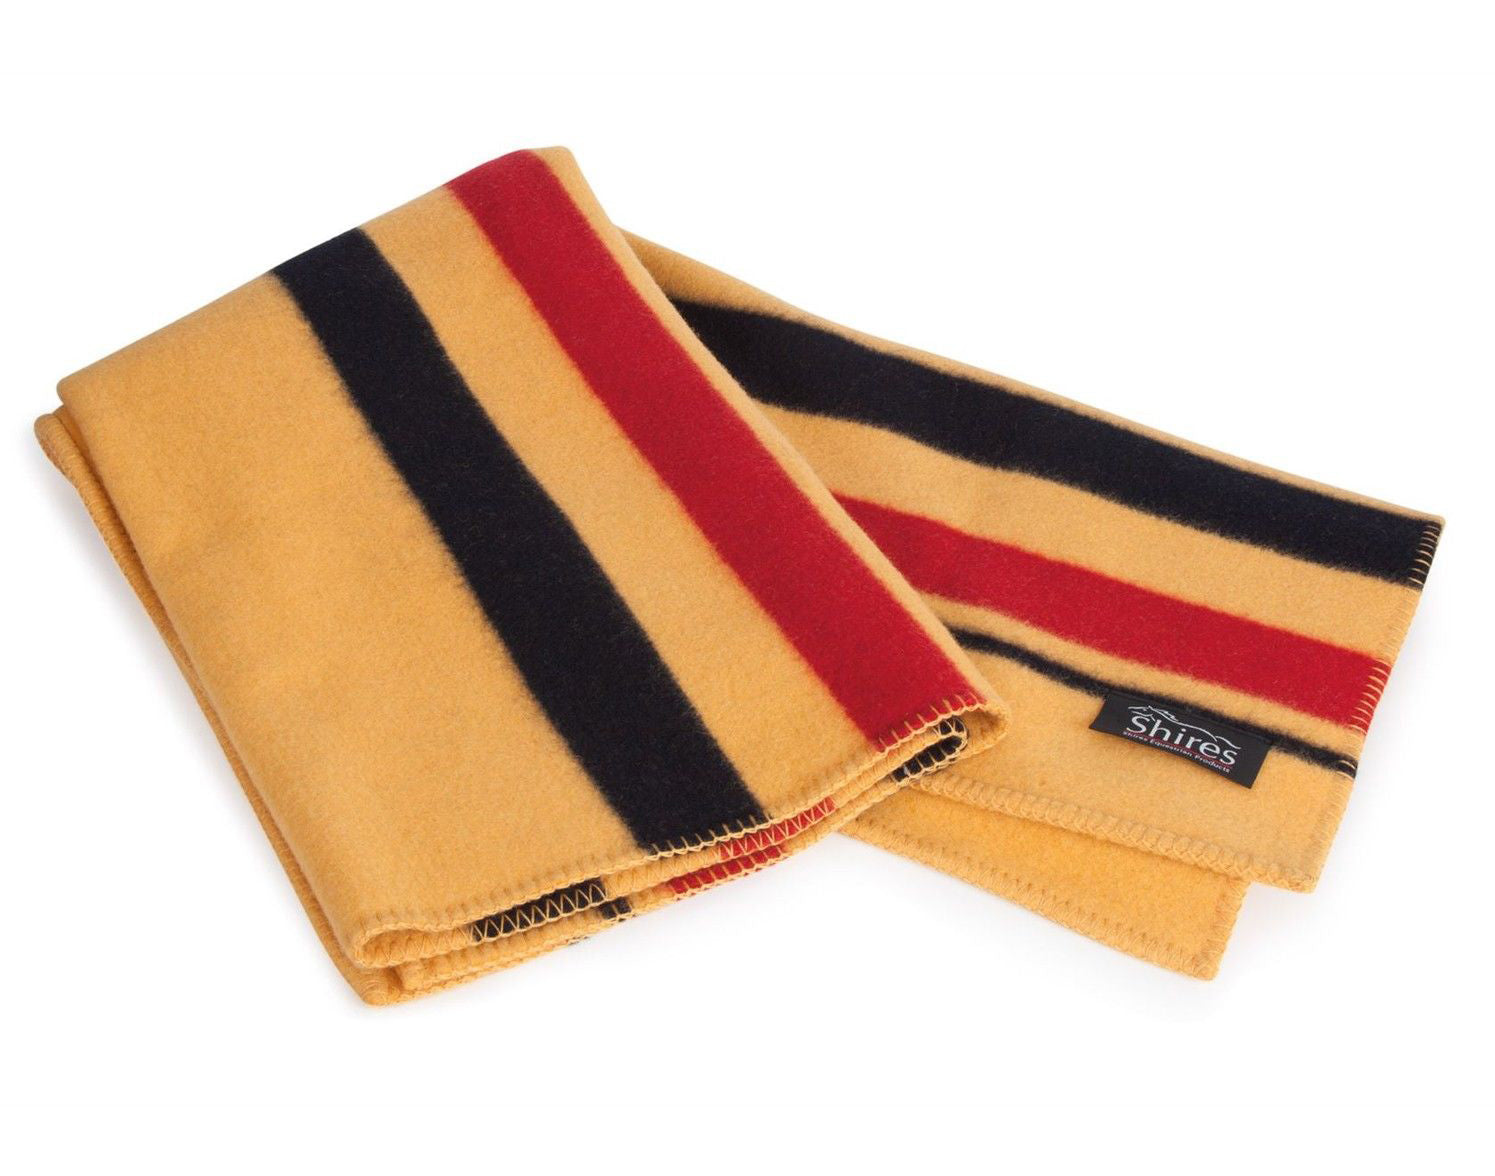 Shires Newmarket Witney Square Wool Blanket - North Shore Saddlery